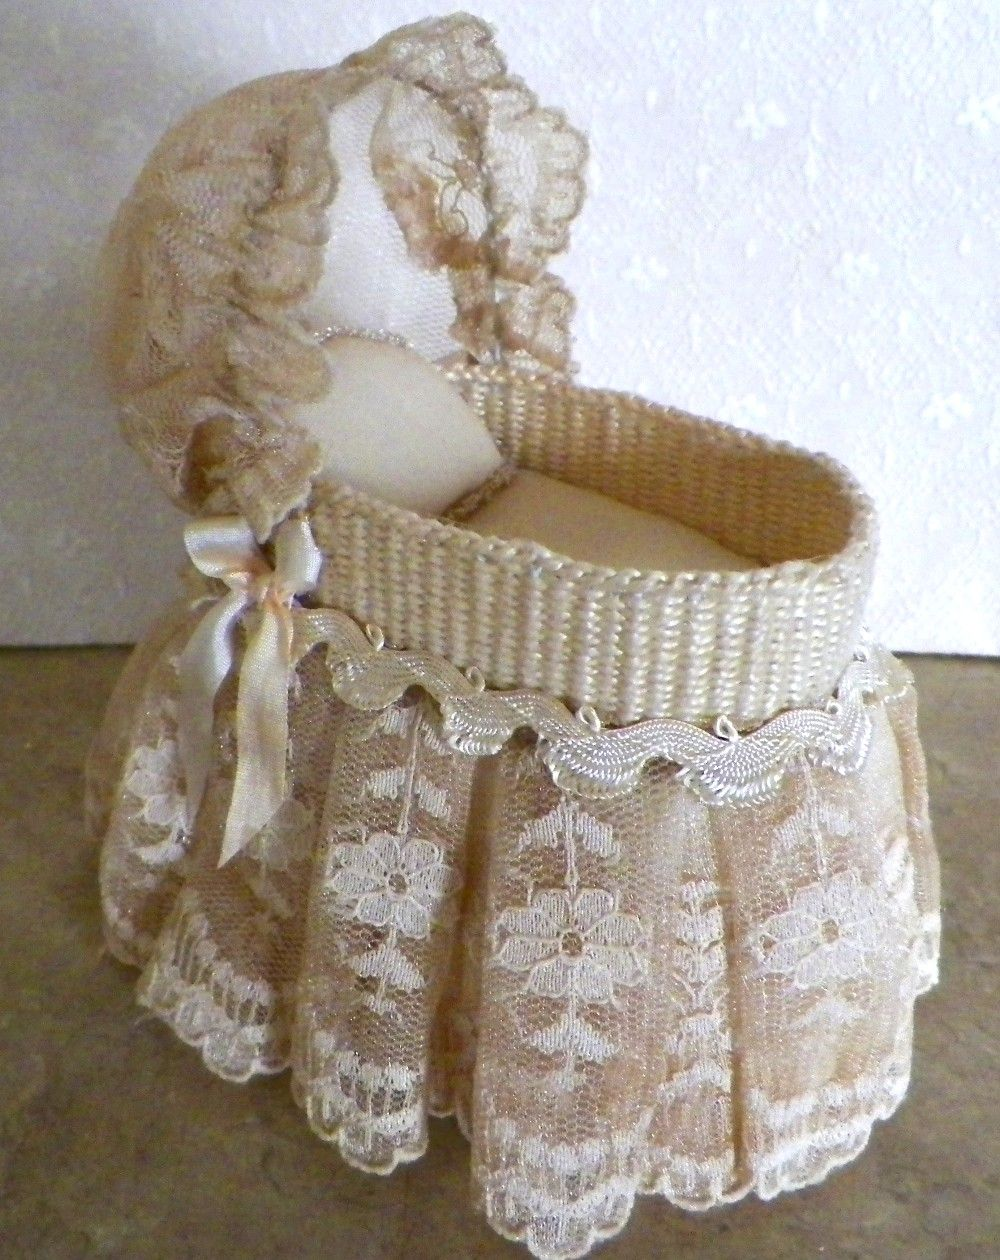 Handmade Wicker Moses Basket : Handmade wicker bassinet with vintage golden lace